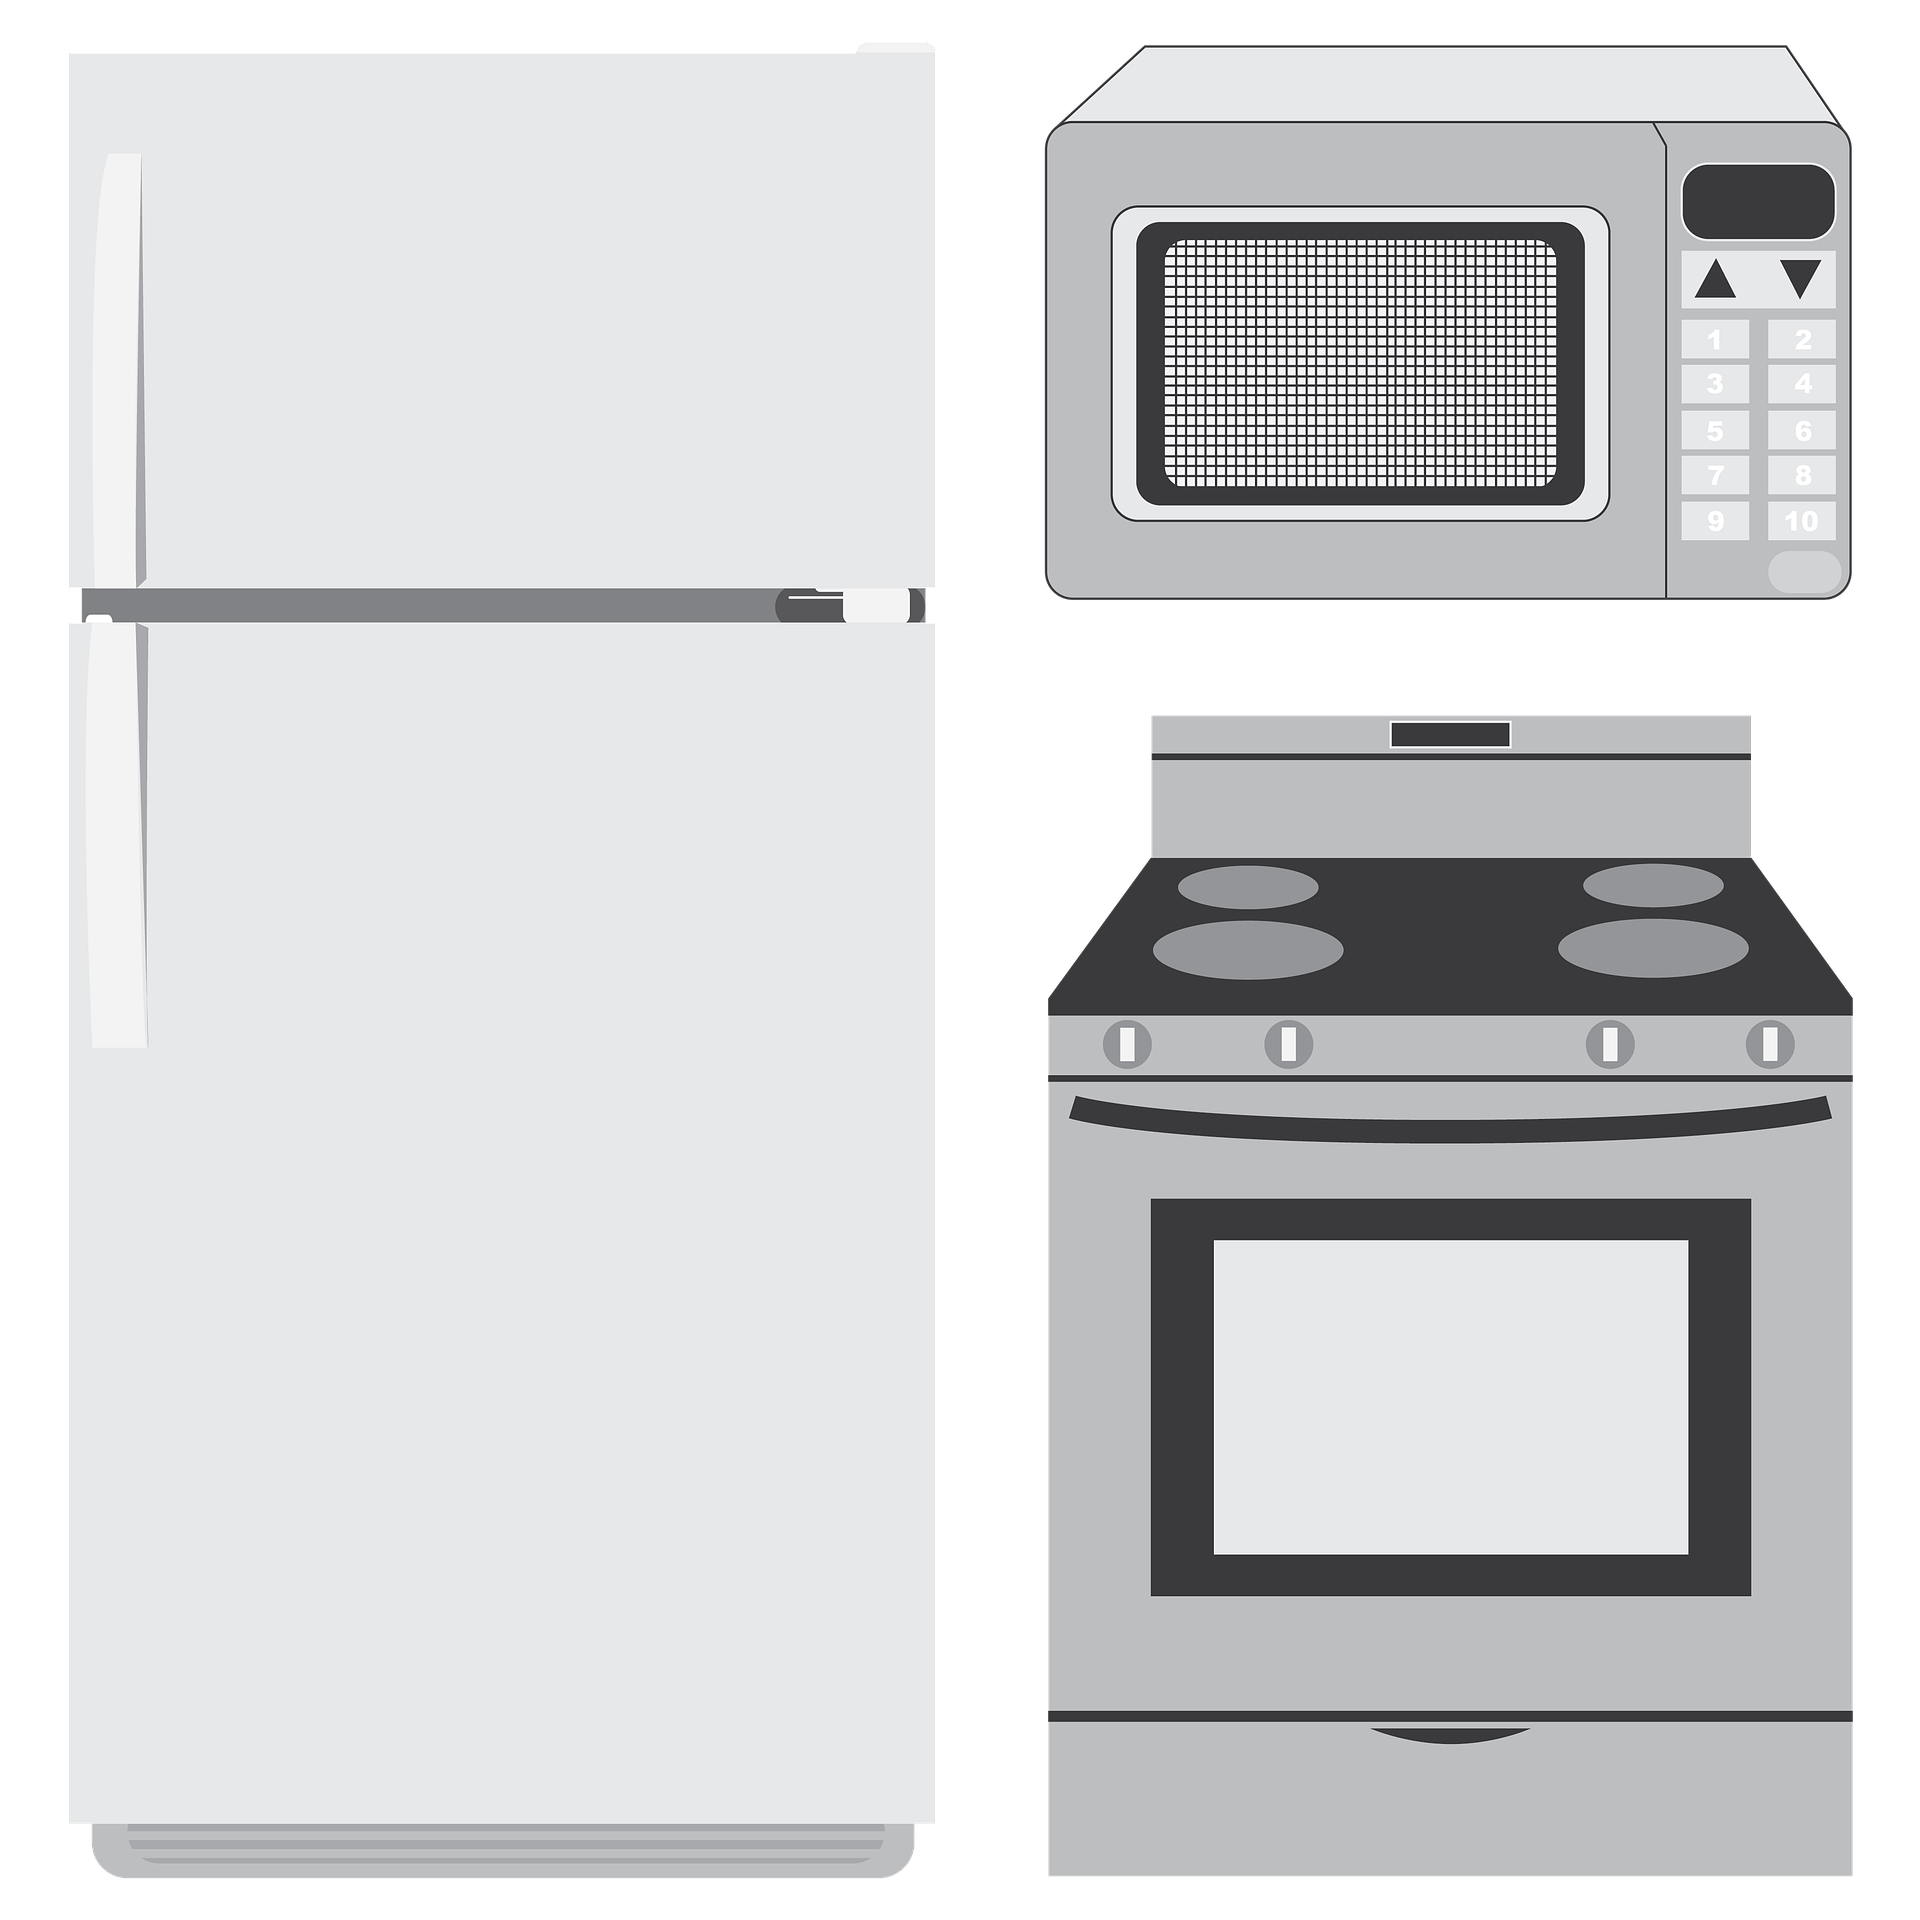 Various kind of appliances including microwave, oven and refrigerator